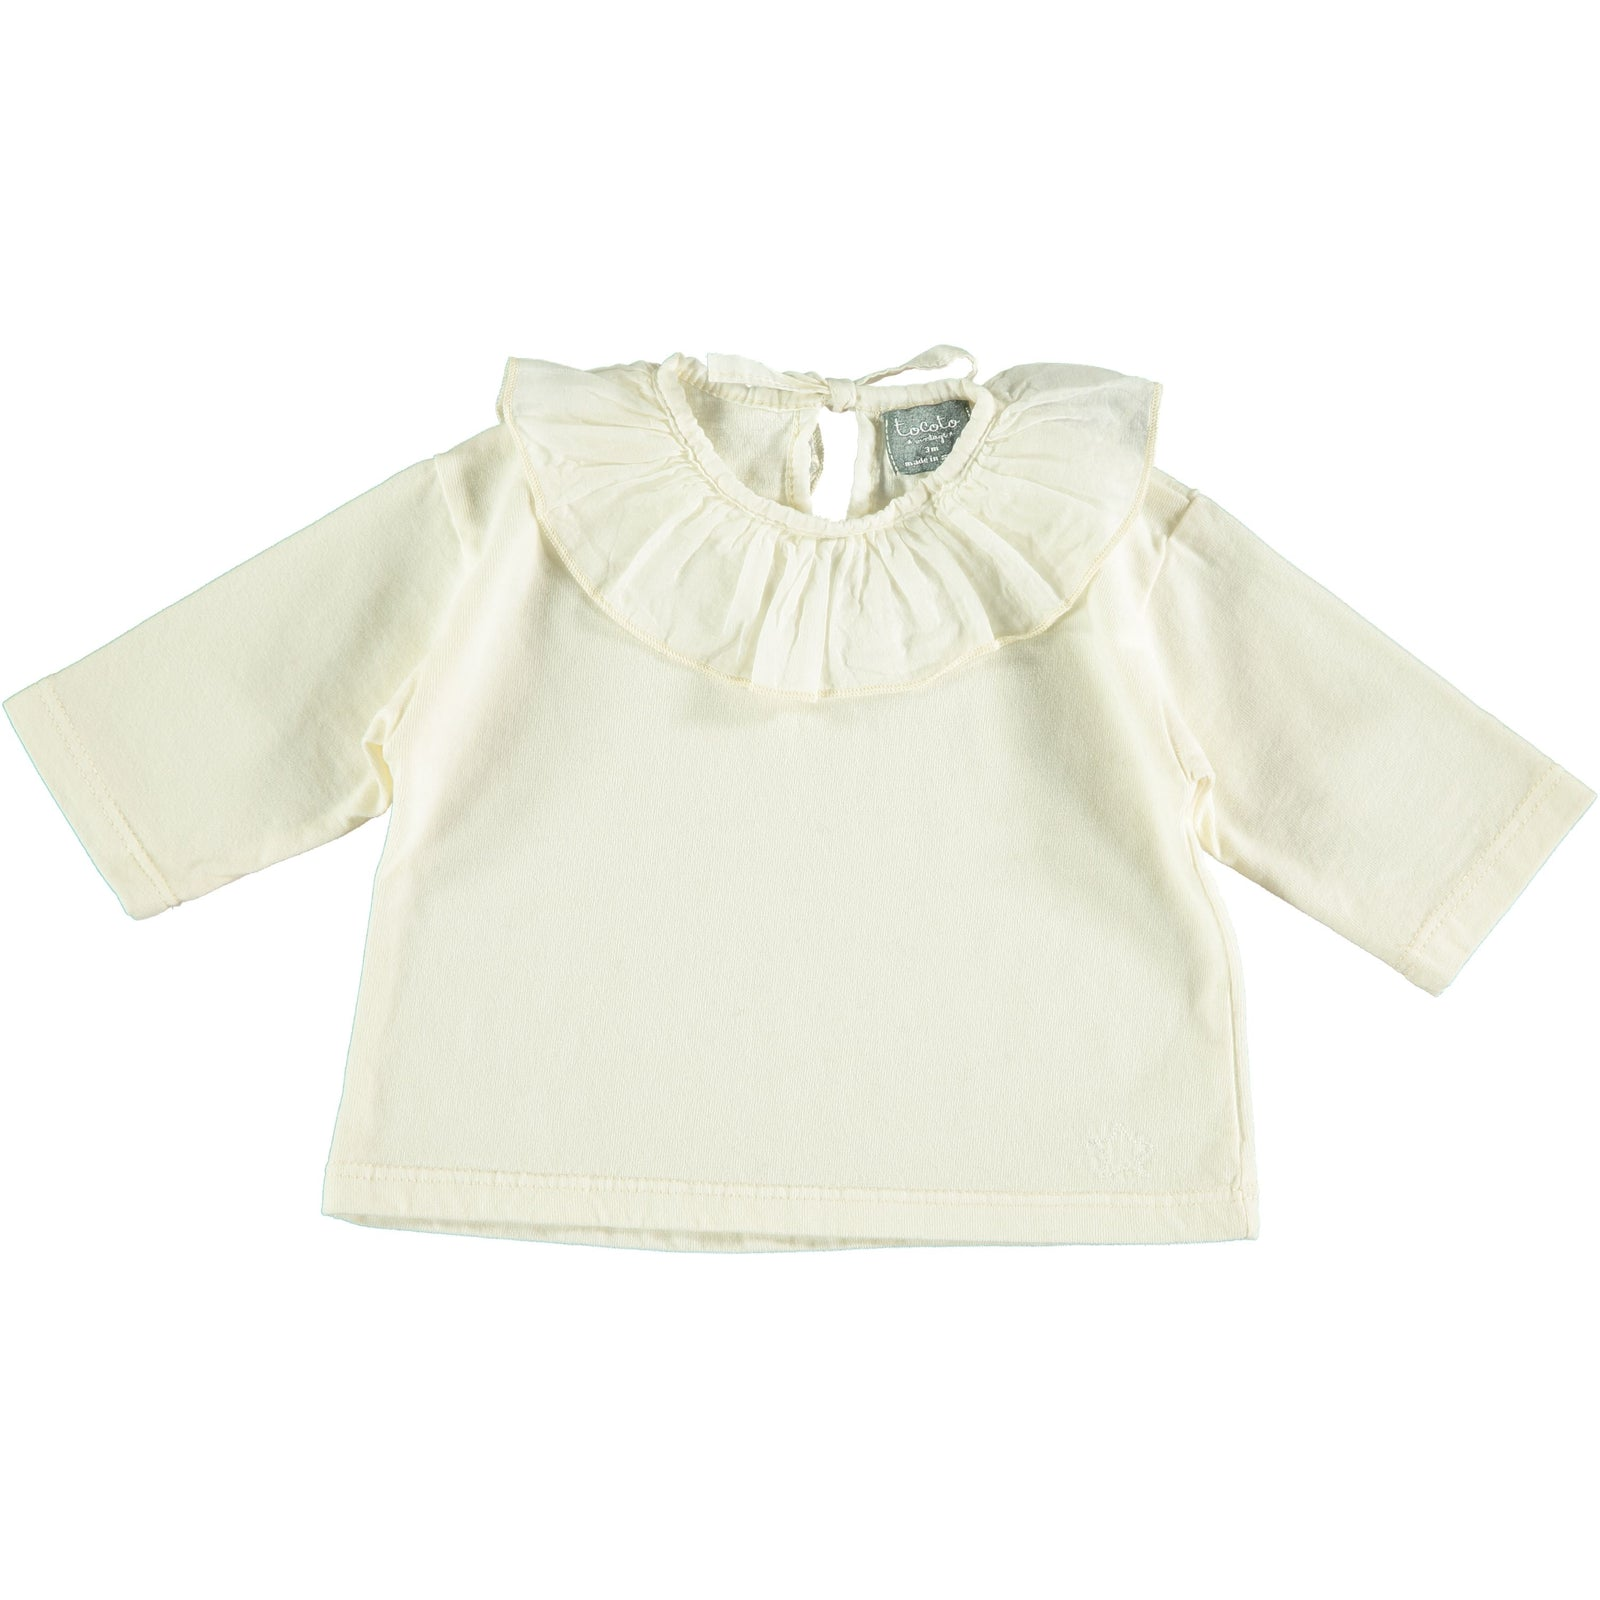 Voile Collar Shirt - Off White